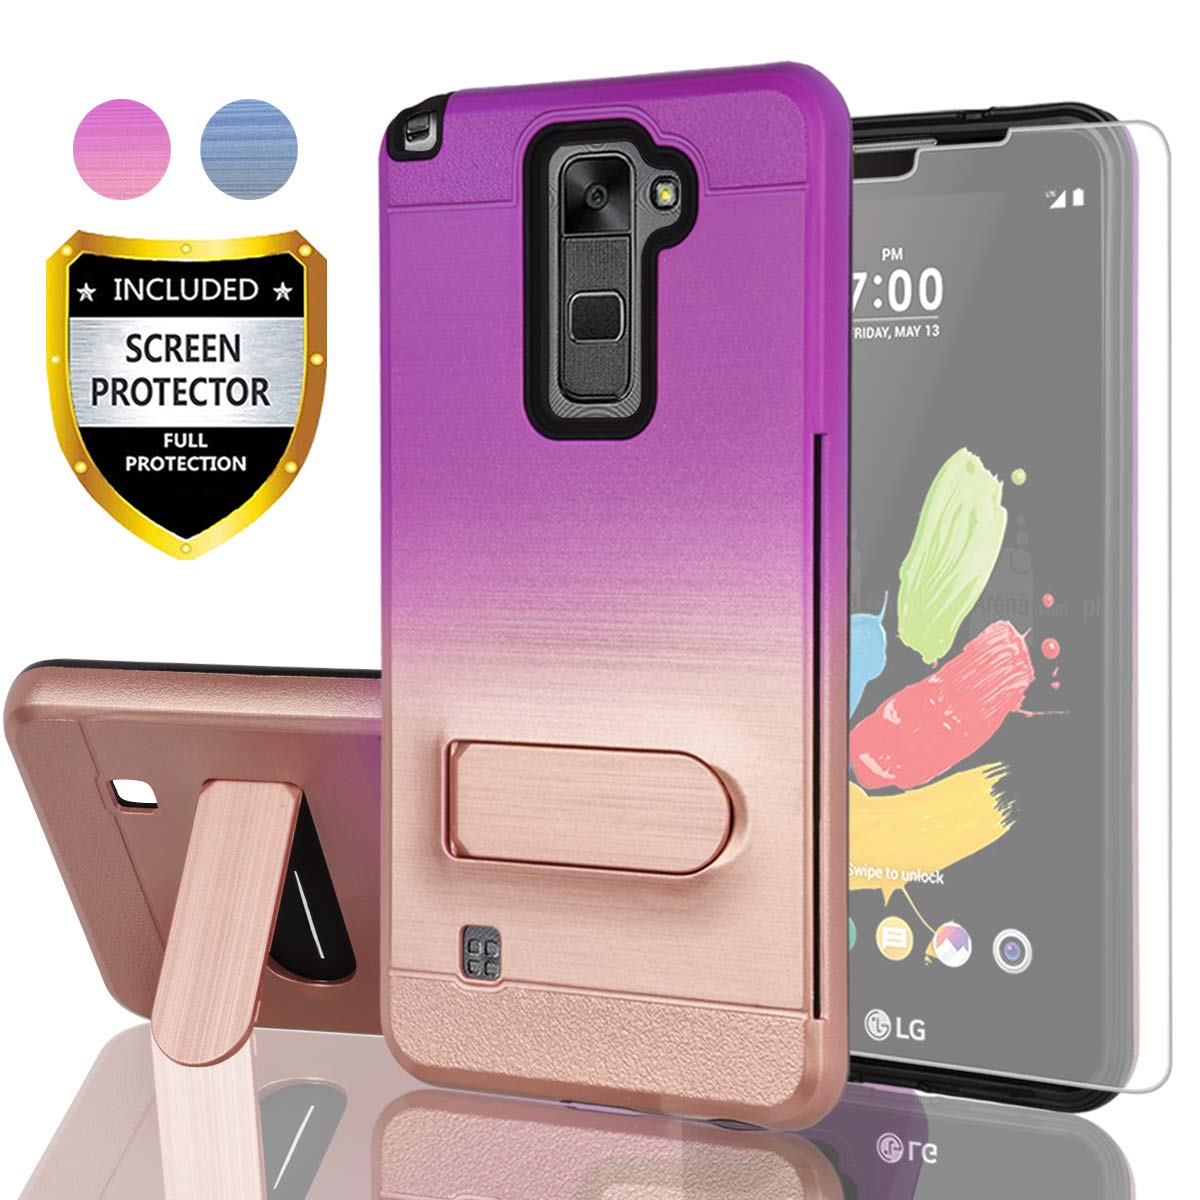 AYMECL LG Stylo 2 Case,LG Stylo 2 V Case,LG Stylo 2 Plus/LG Stylus 2 Plus  Case with HD Screen Protector,[Card Slot Holder] Plastic TPU Mixed Gradient